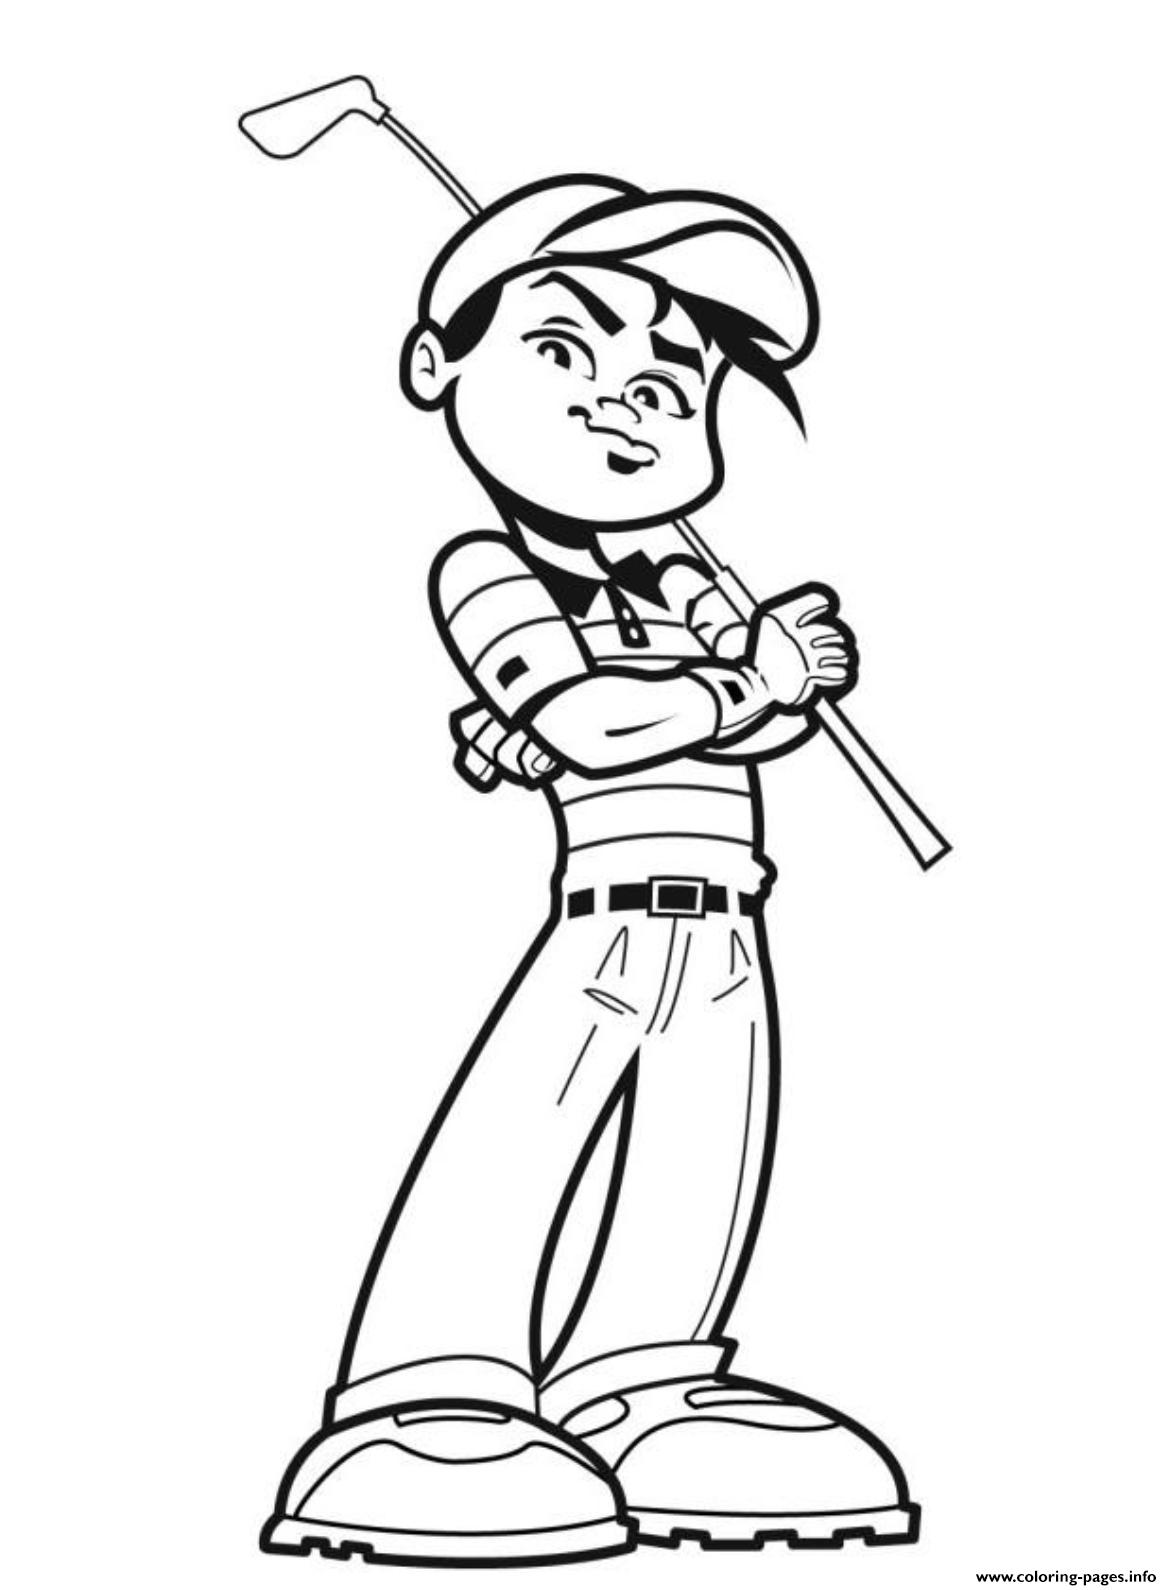 Awesome Golfer Sports Sbd9a Coloring Pages Printable